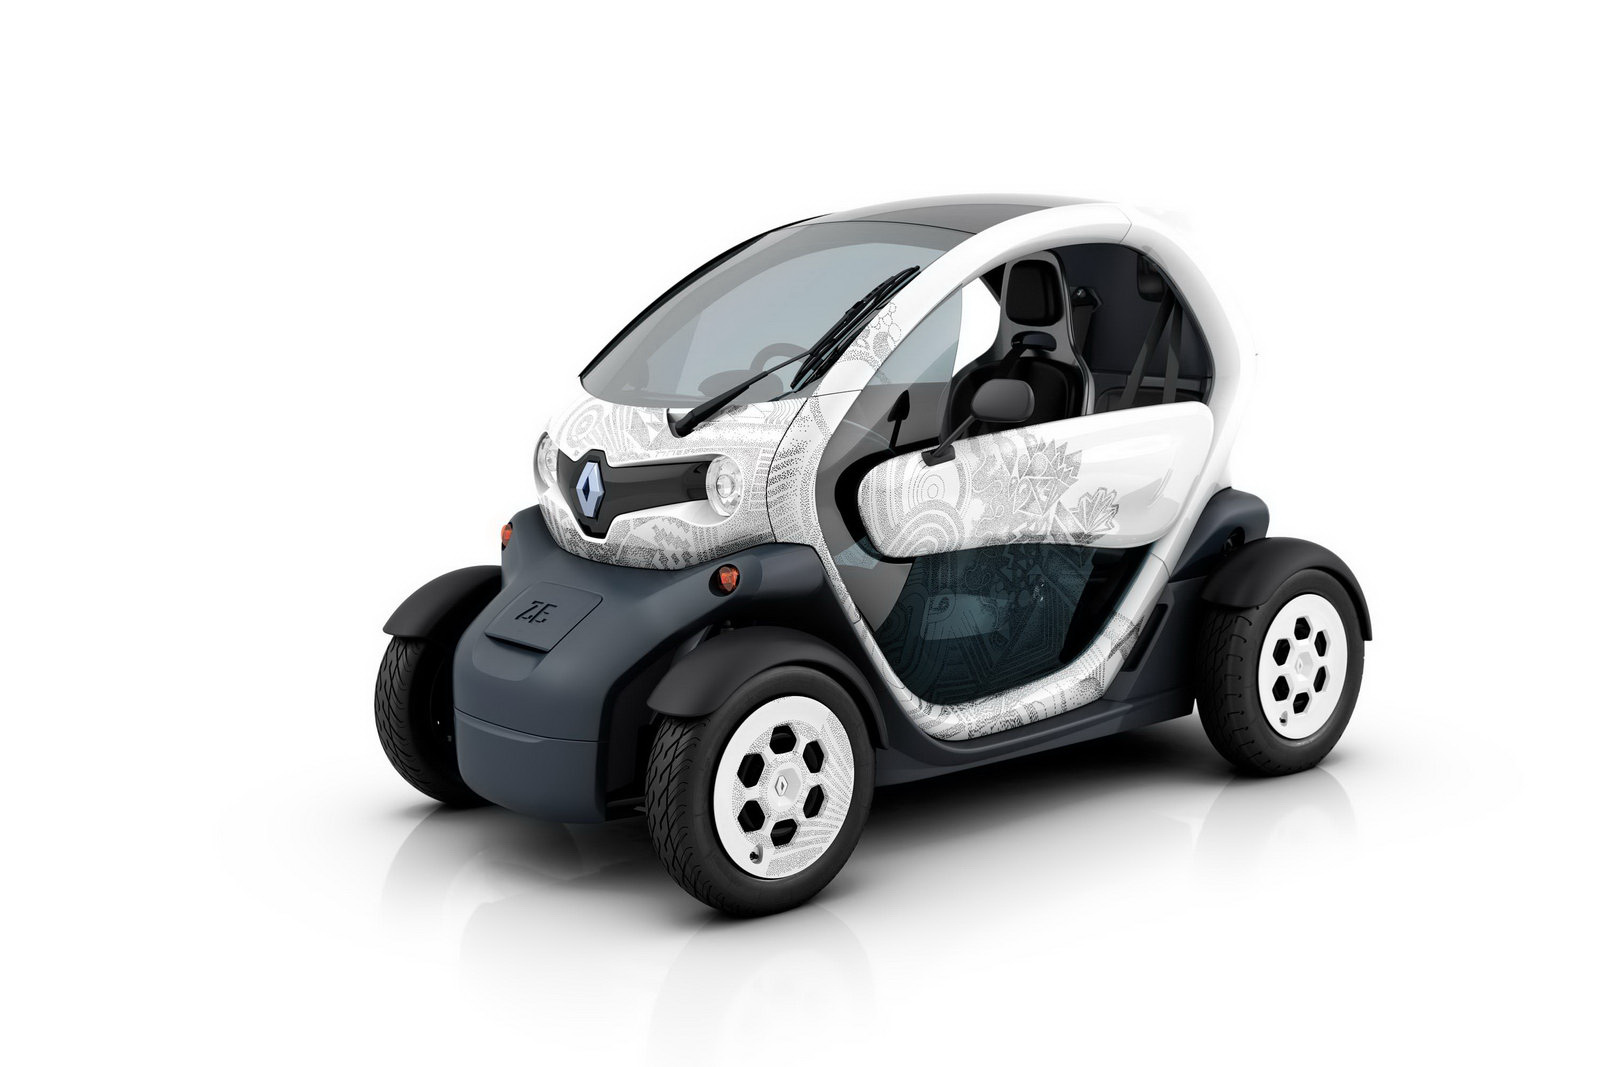 Renault Twizy Image Wallpapers Download